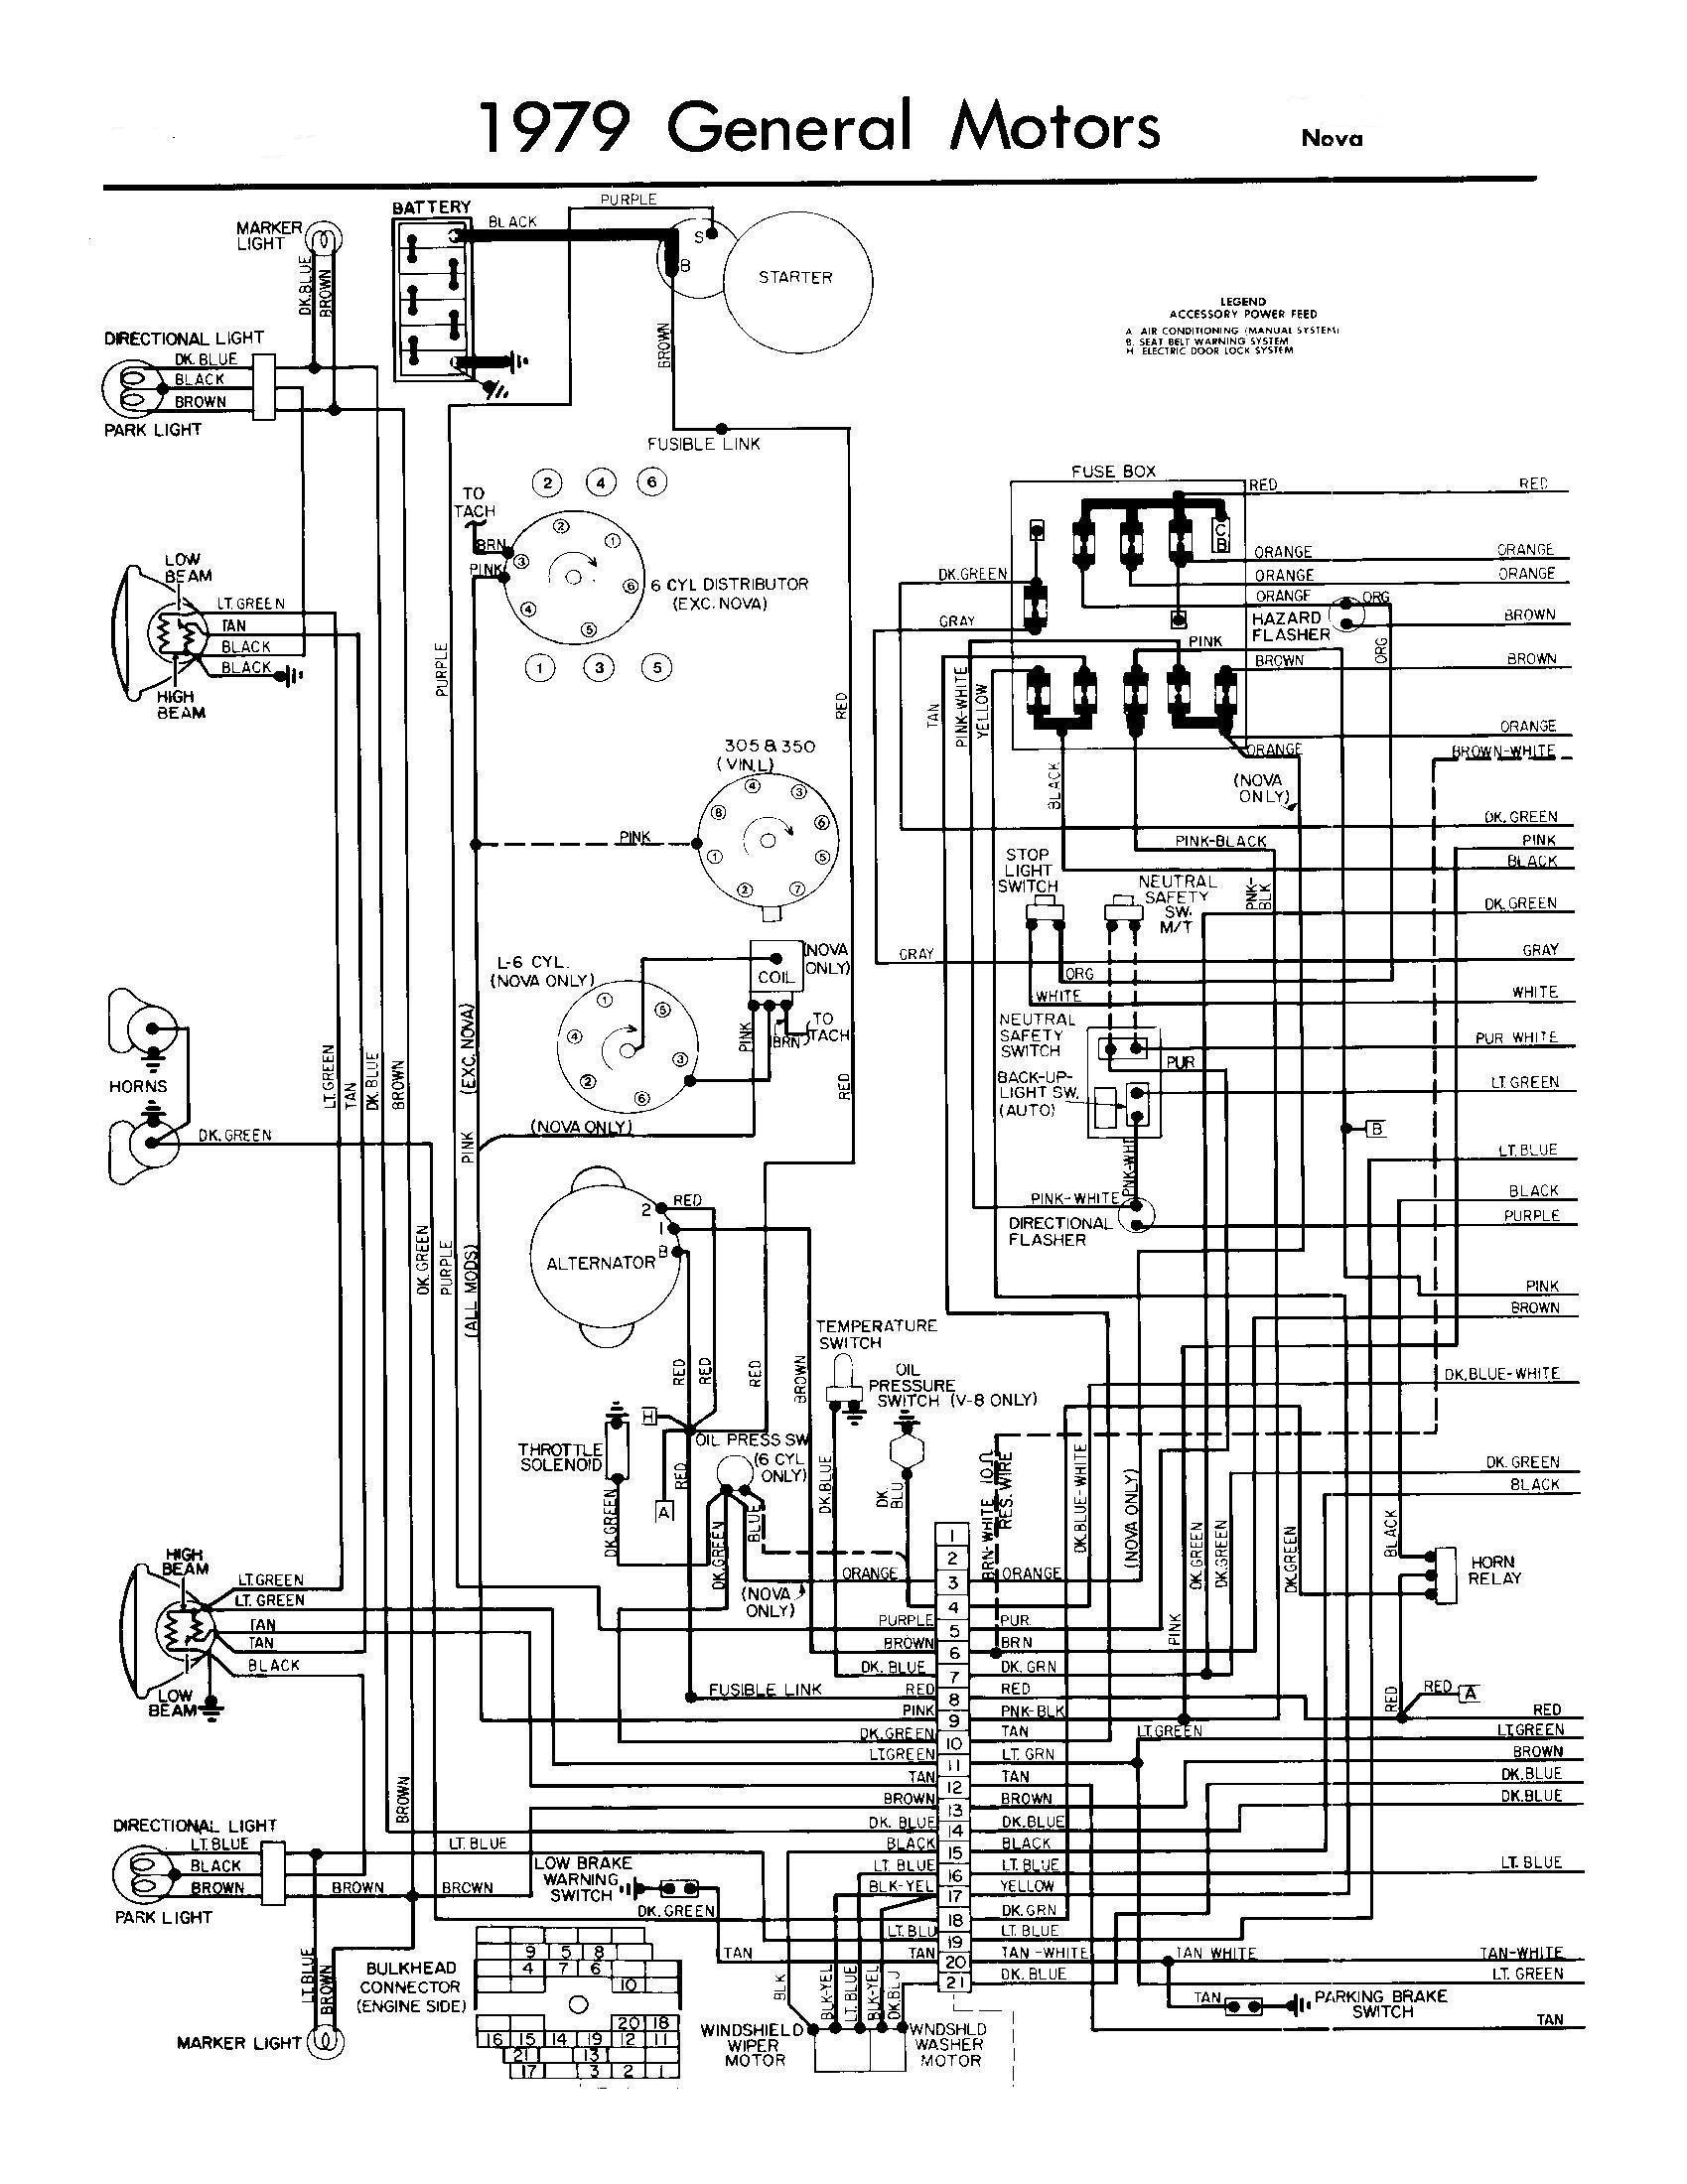 1979 nova wiring diagrams air conditioning